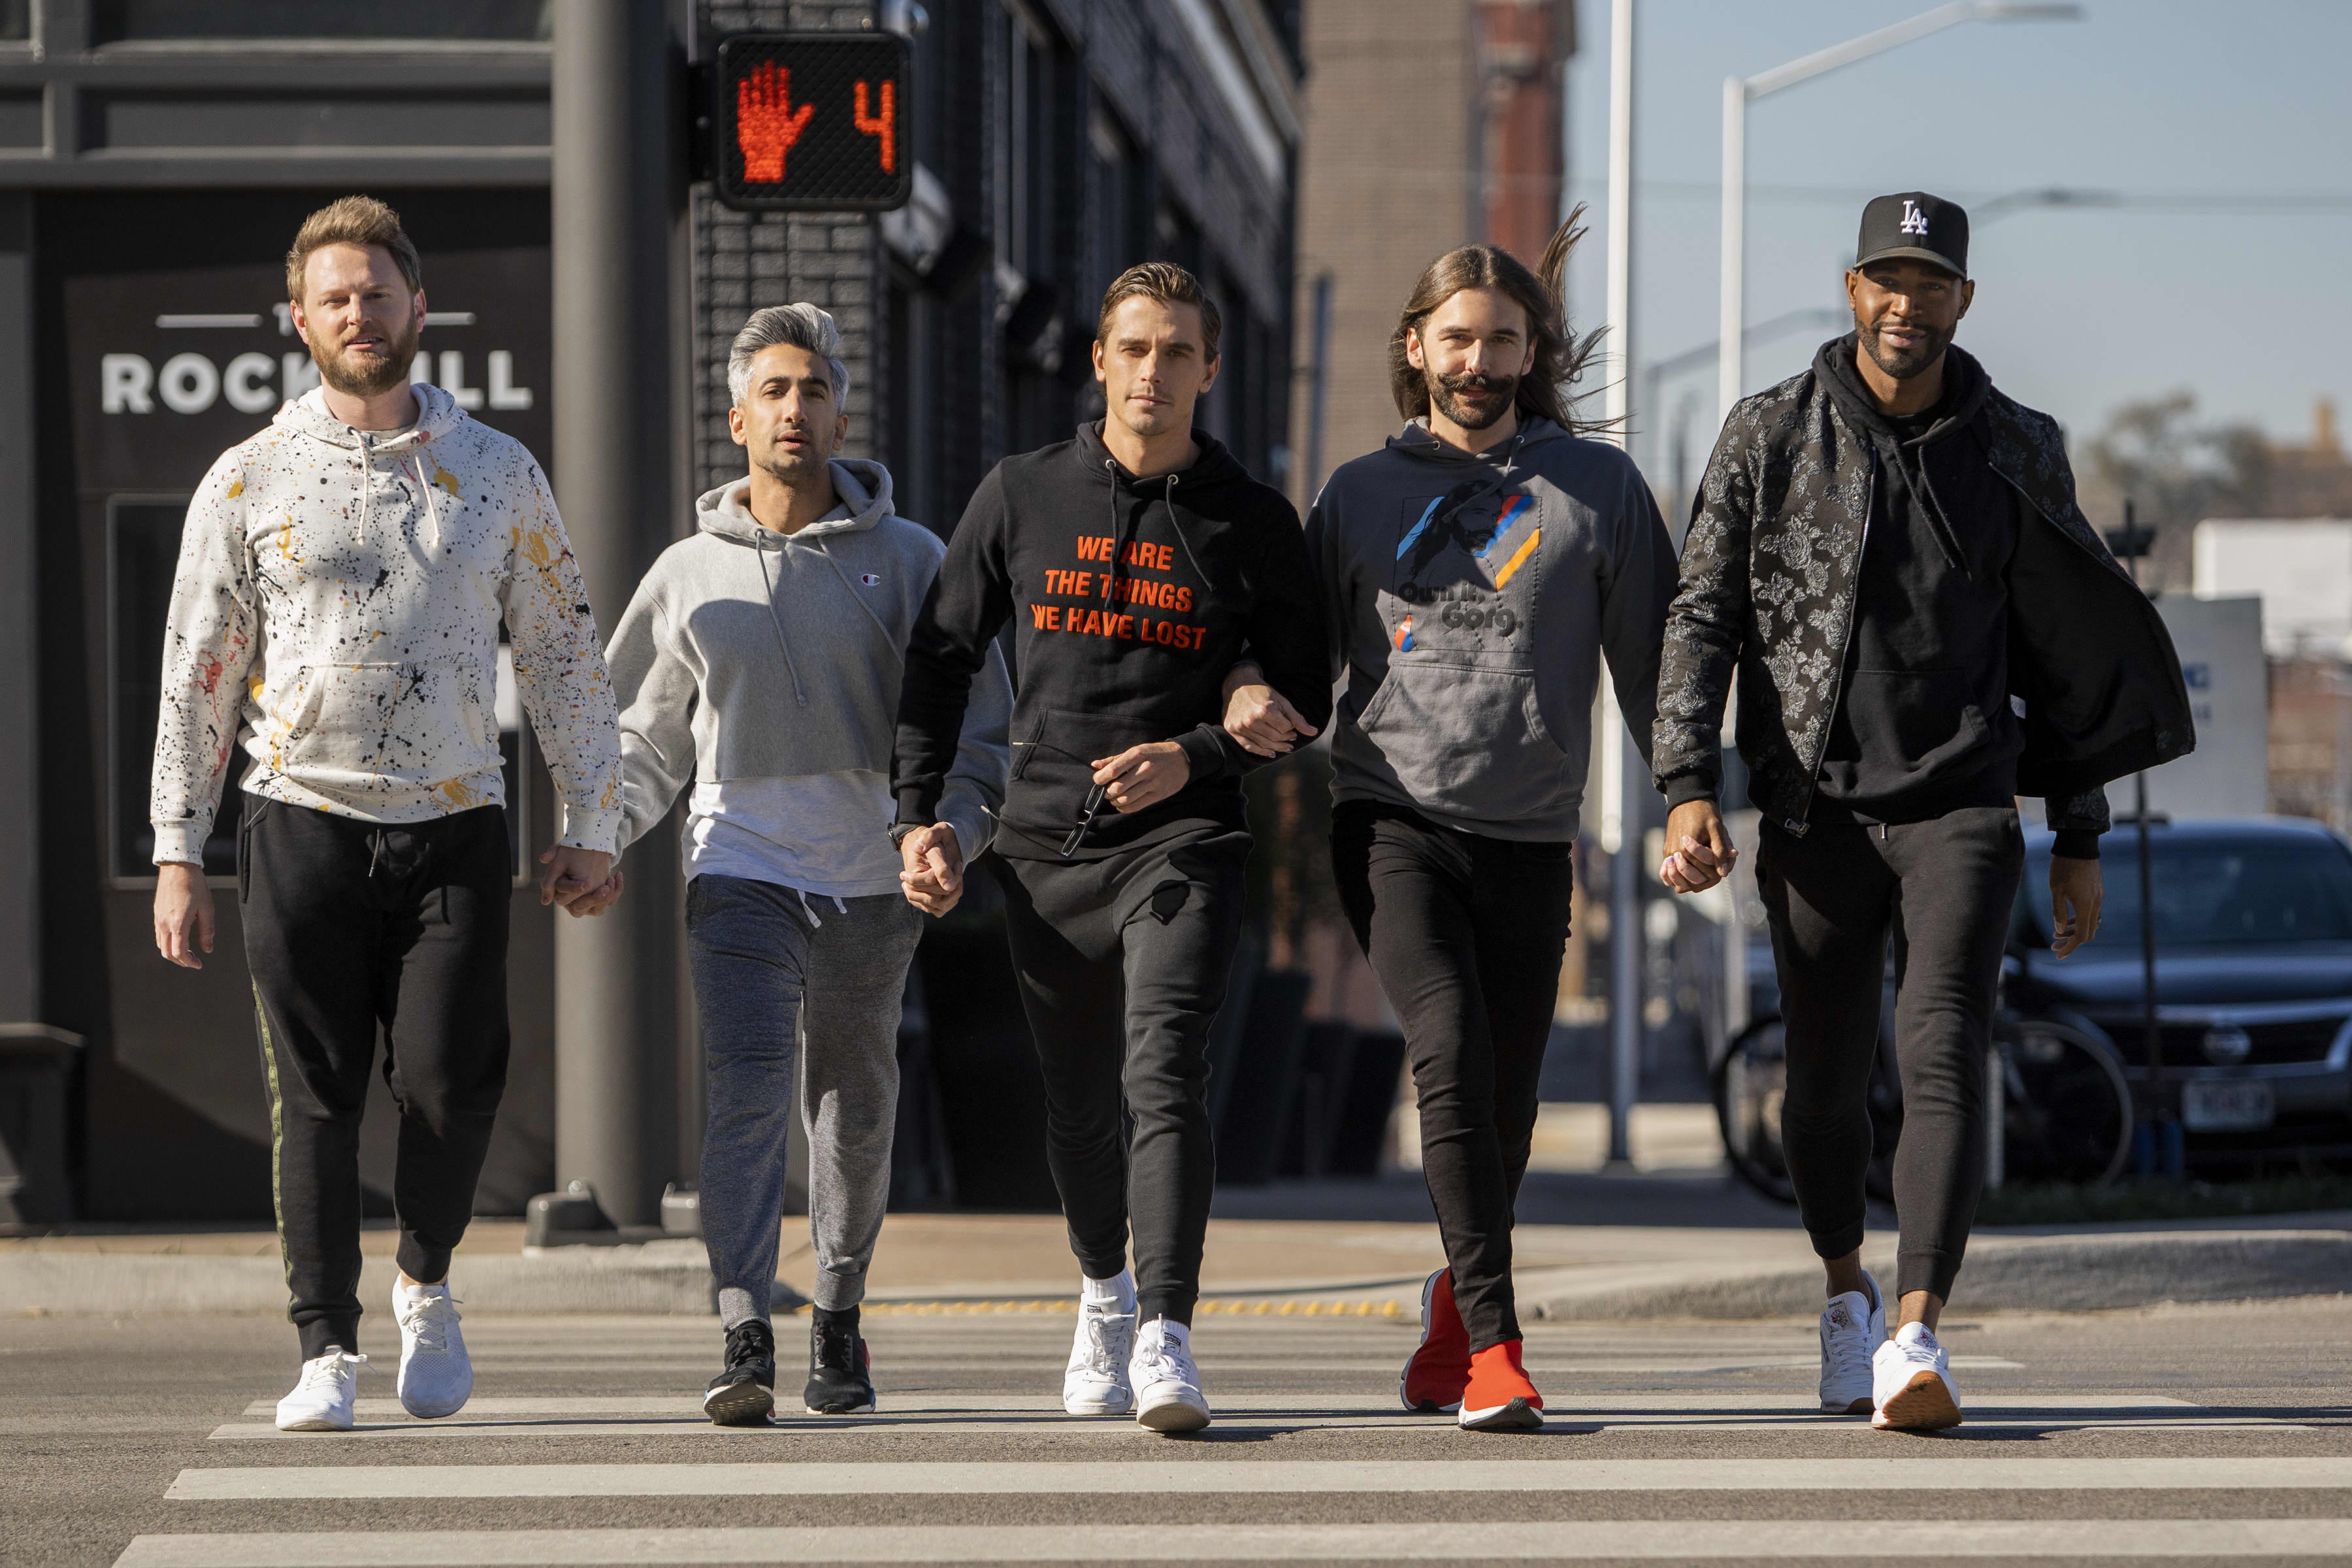 Netflix Just Announced the 'Queer Eye' Season 4 Premiere Date and It Comes Out So Soon